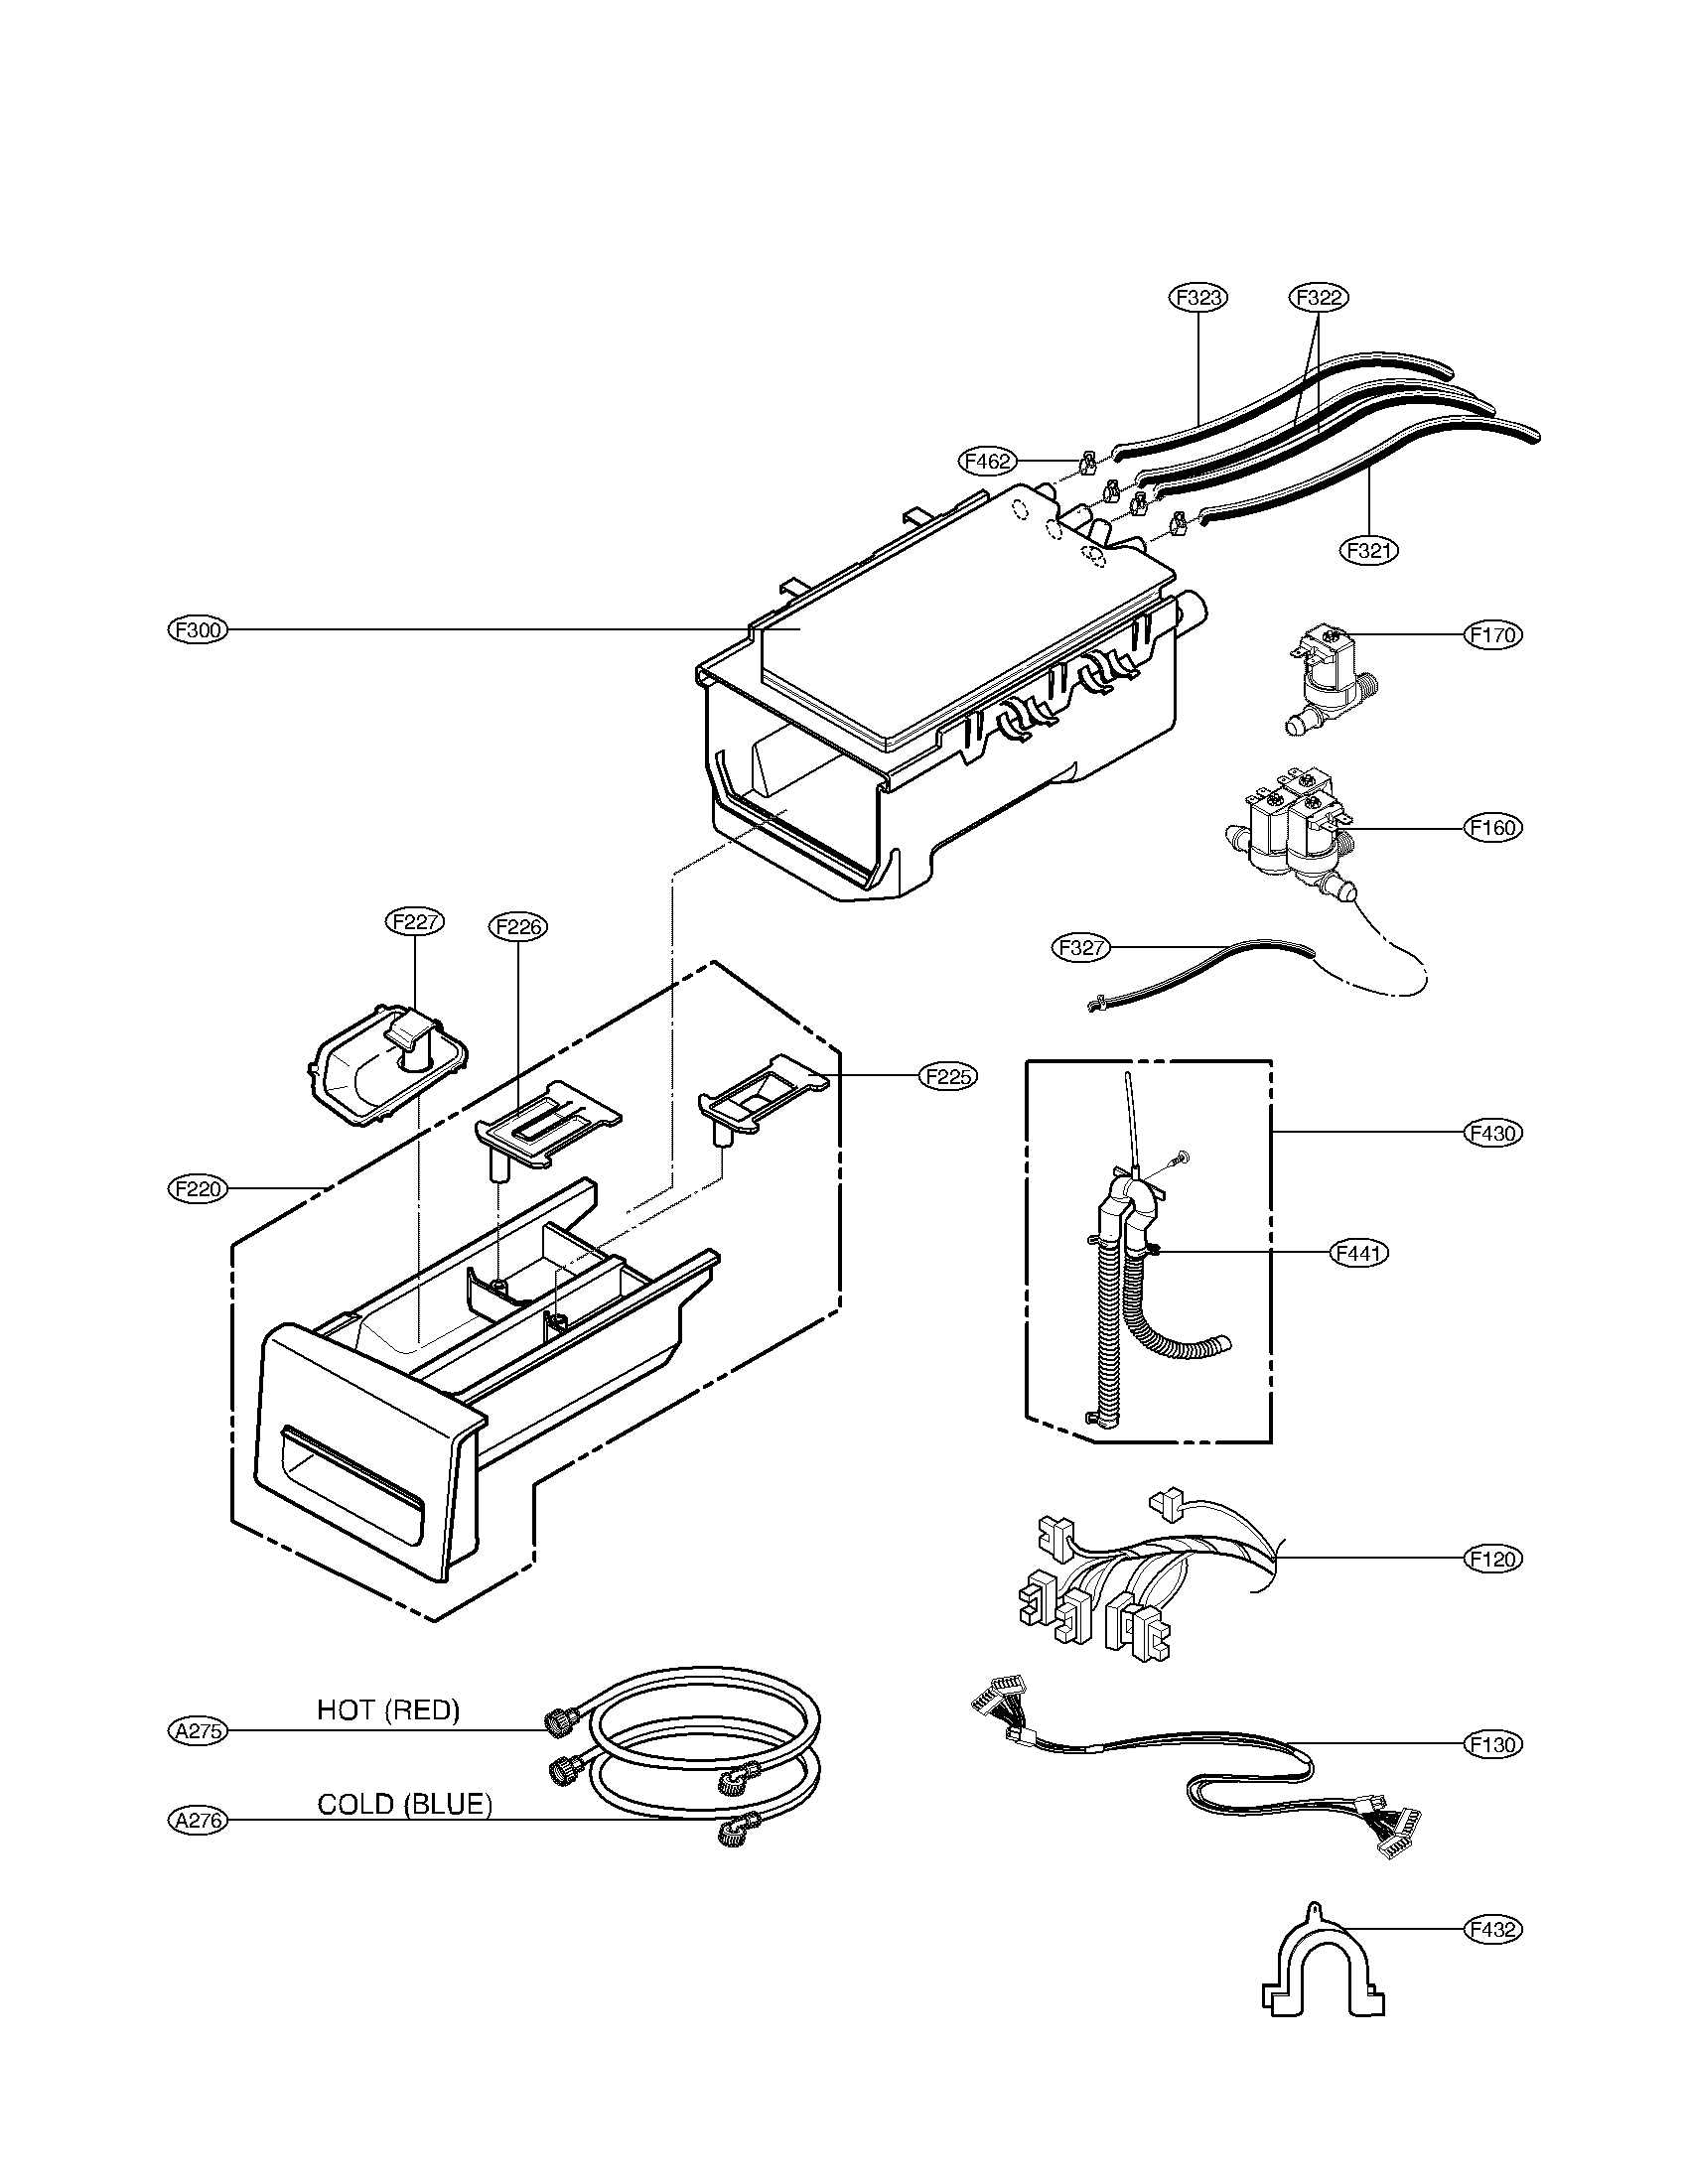 DISPENSER ASSEMBLY PARTS Diagram & Parts List for Model